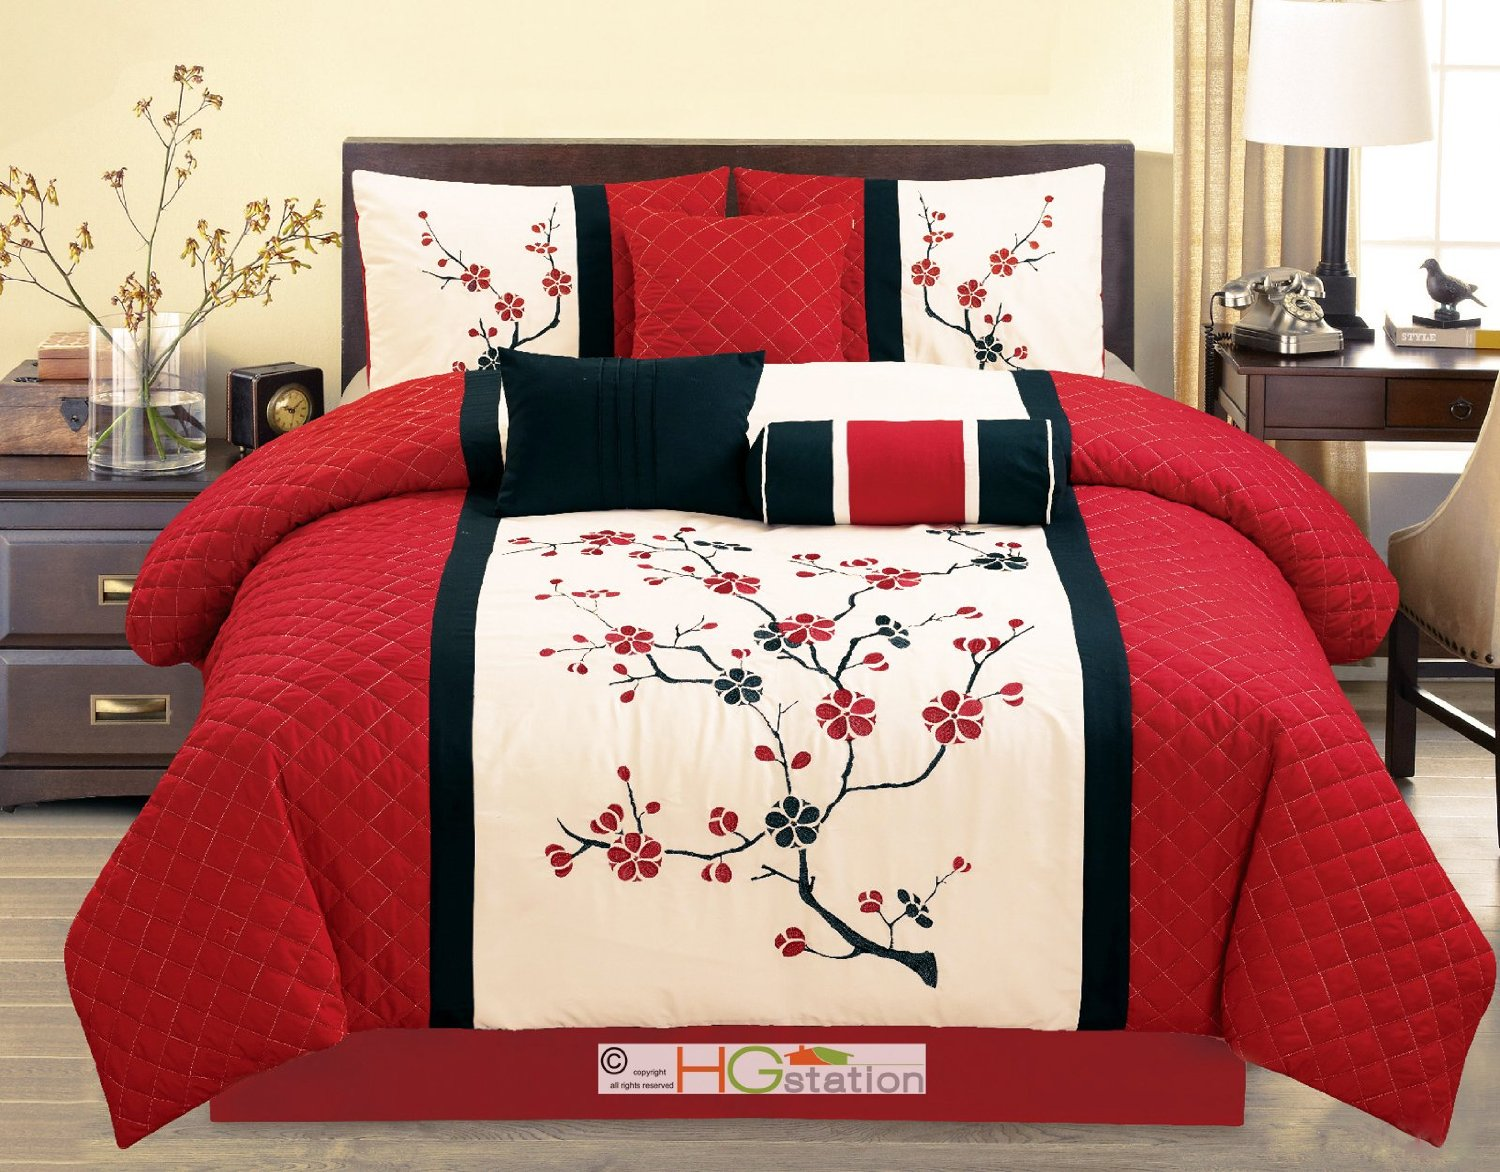 Japanese Inspired Beds Asian Inspired Comforters Duvet Covers And Bedding